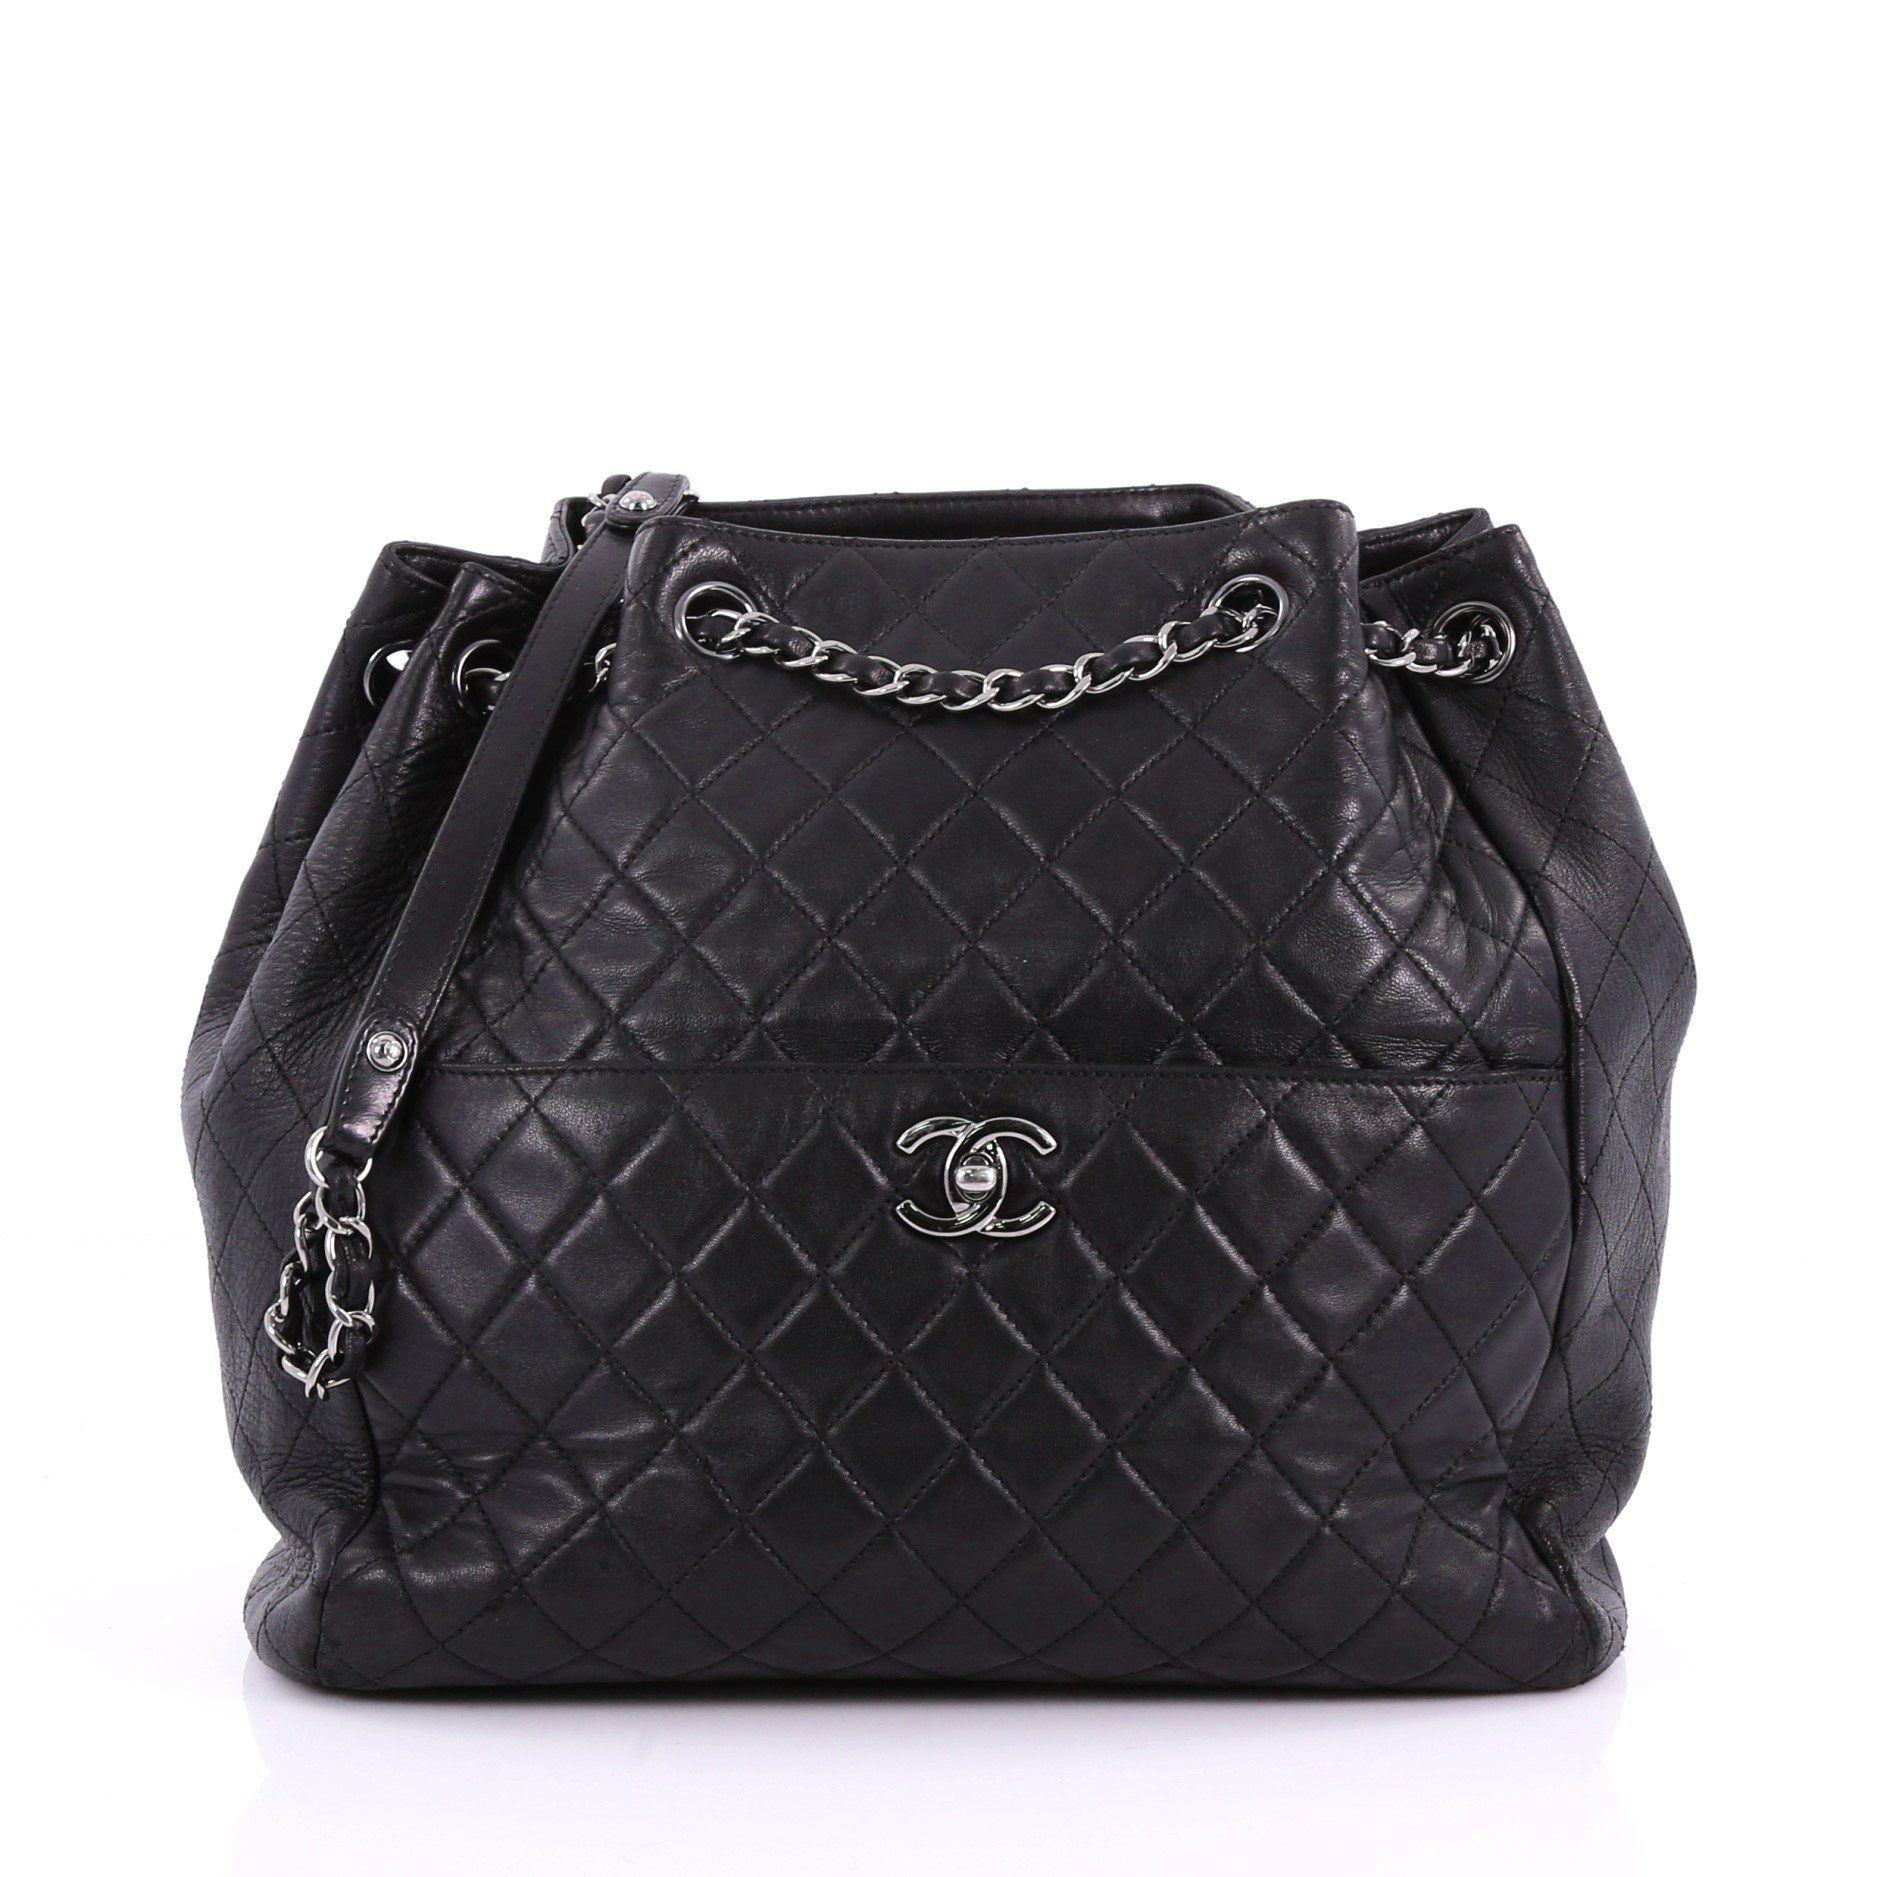 4a6bbca36c57 Lyst - Chanel Pre Owned Drawstring Cc Lock Bucket Bag Quilted ...